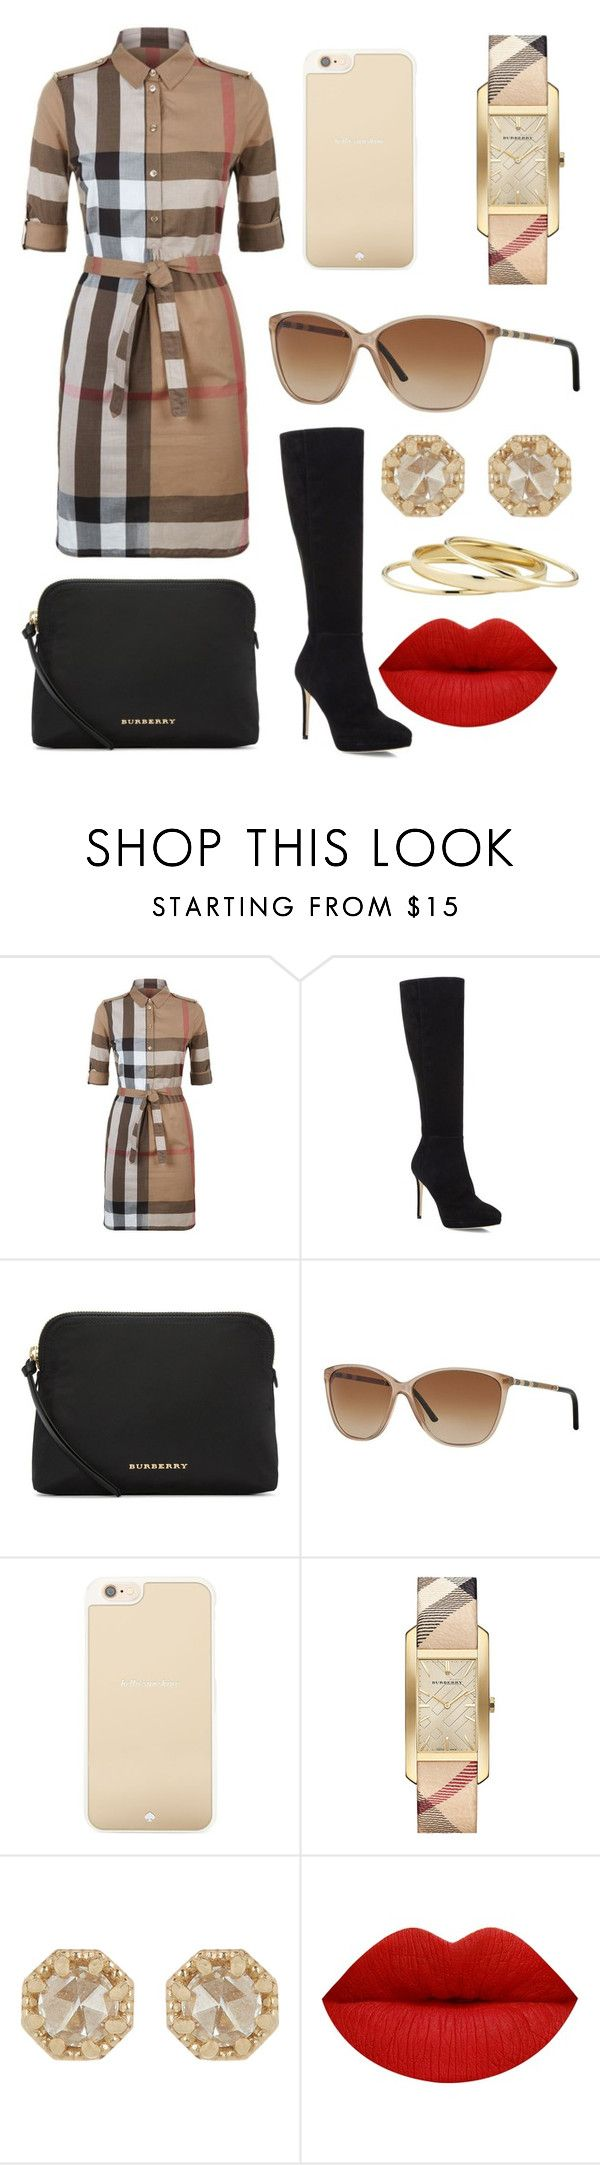 """Burberry Love"" by alphashe on Polyvore featuring Burberry, Jimmy Choo, Kate Spade, Grace Lee Designs and Minor Obsessions"